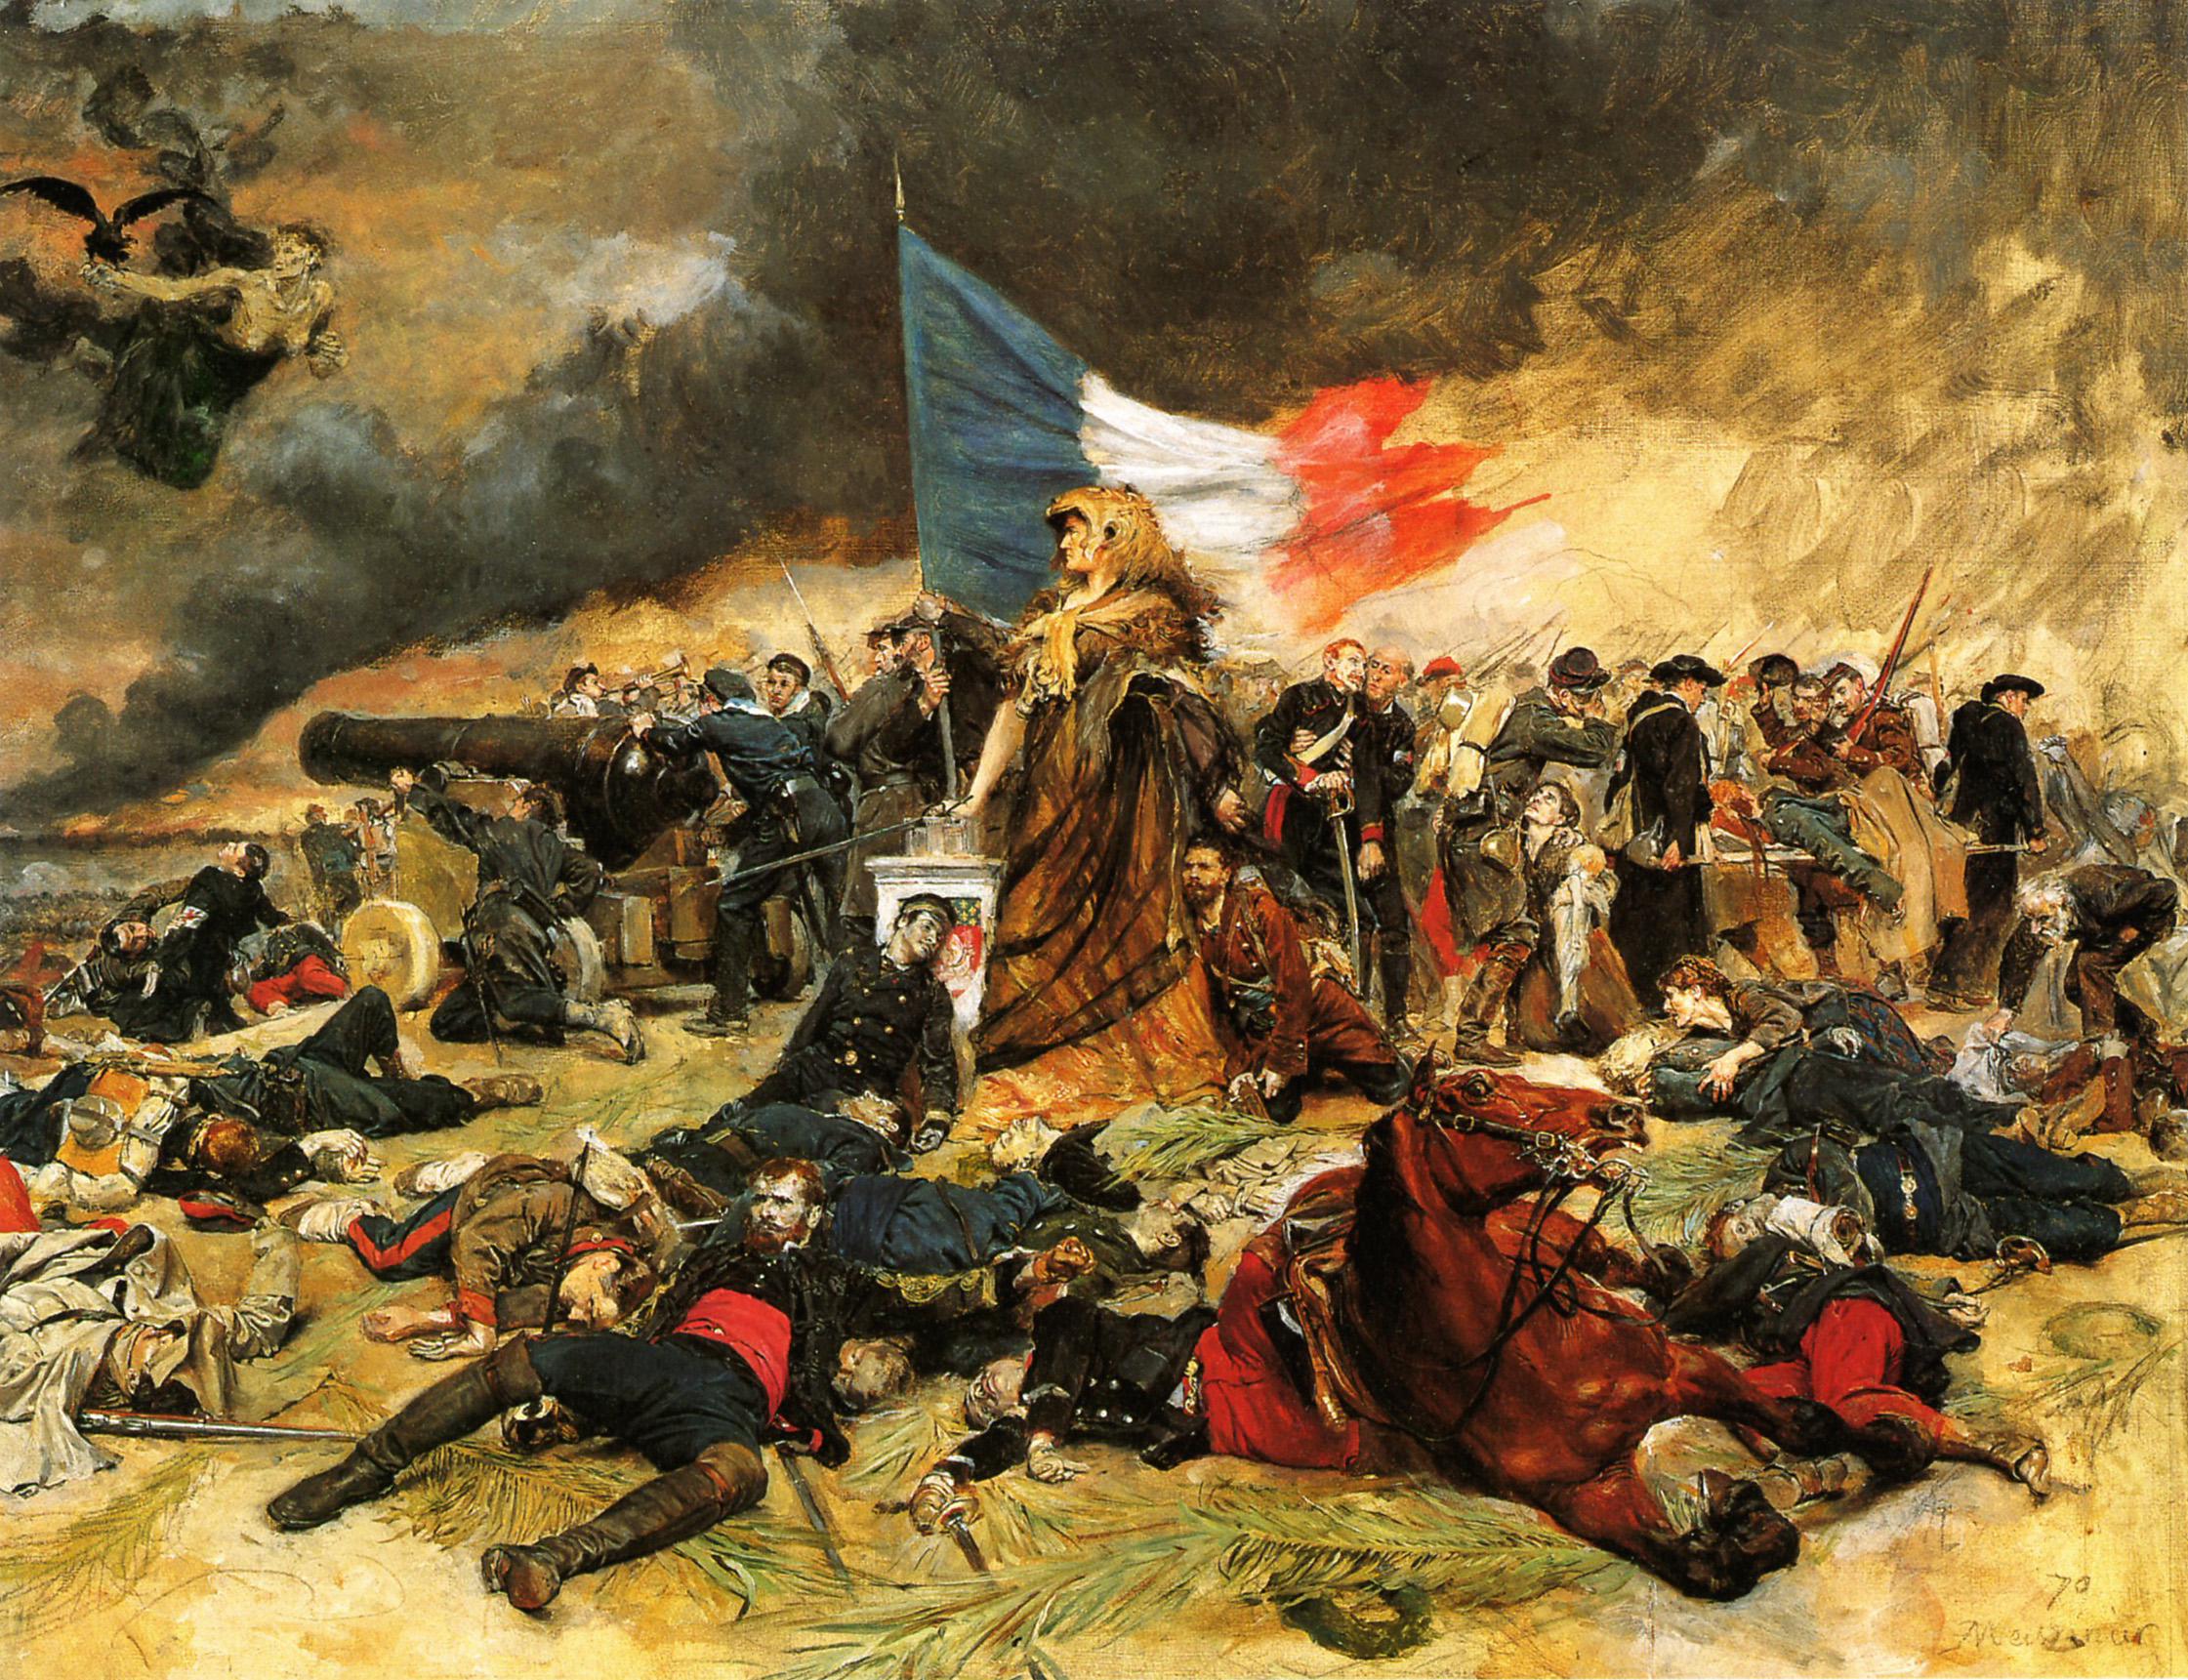 A painting from the French Revolution.